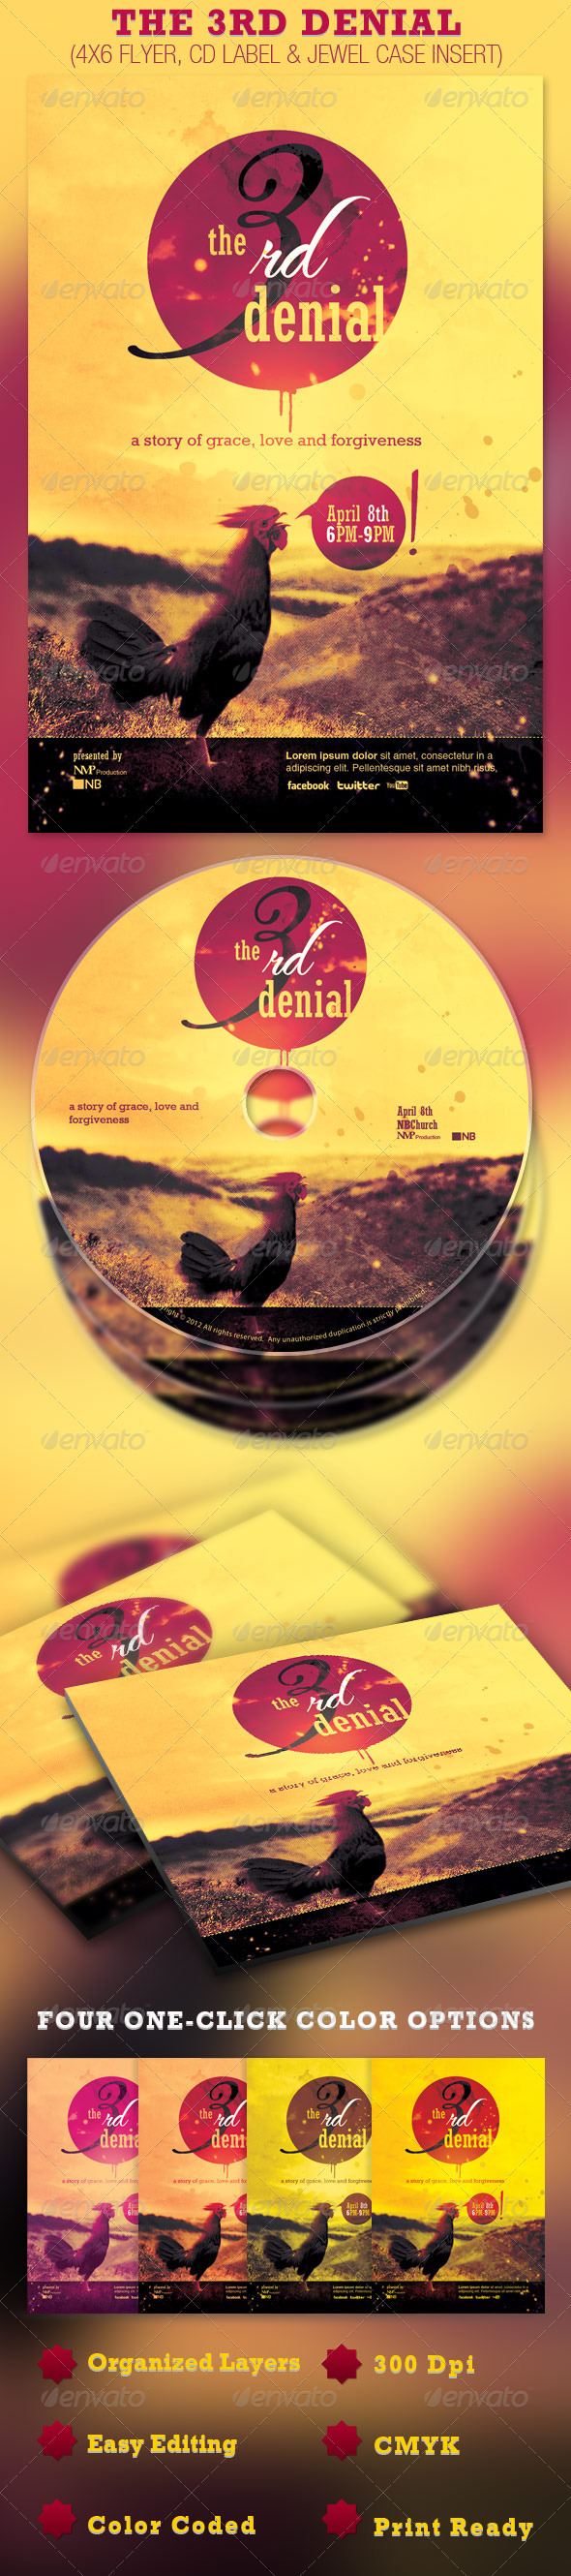 The Third Denial Flyer and CD Template - Church Flyers